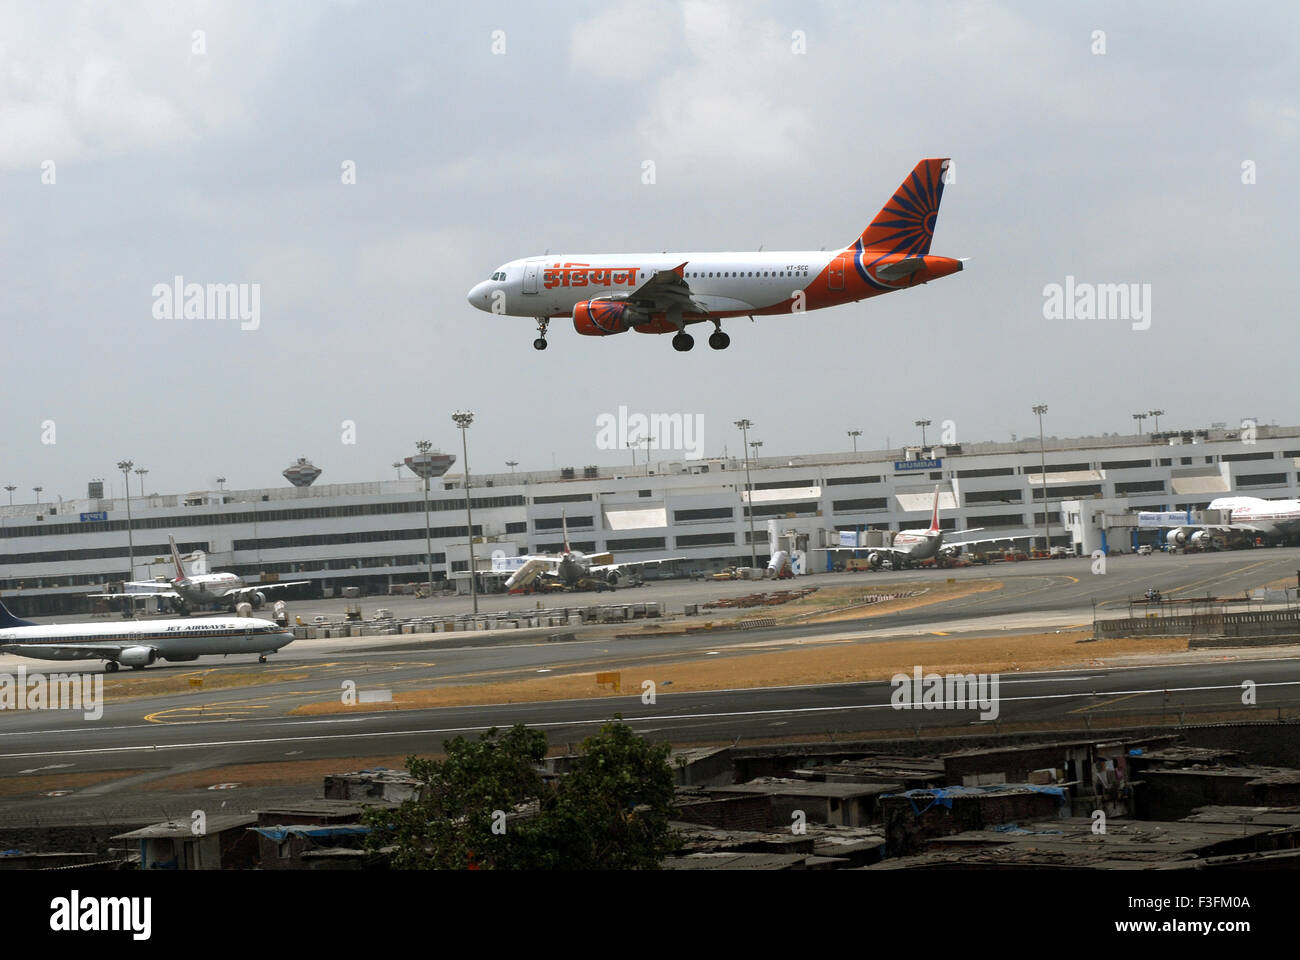 Airlines commercial airliner preparing land Sahar Airport Chatrapati Shivaji International foreground slums airport - Stock Image